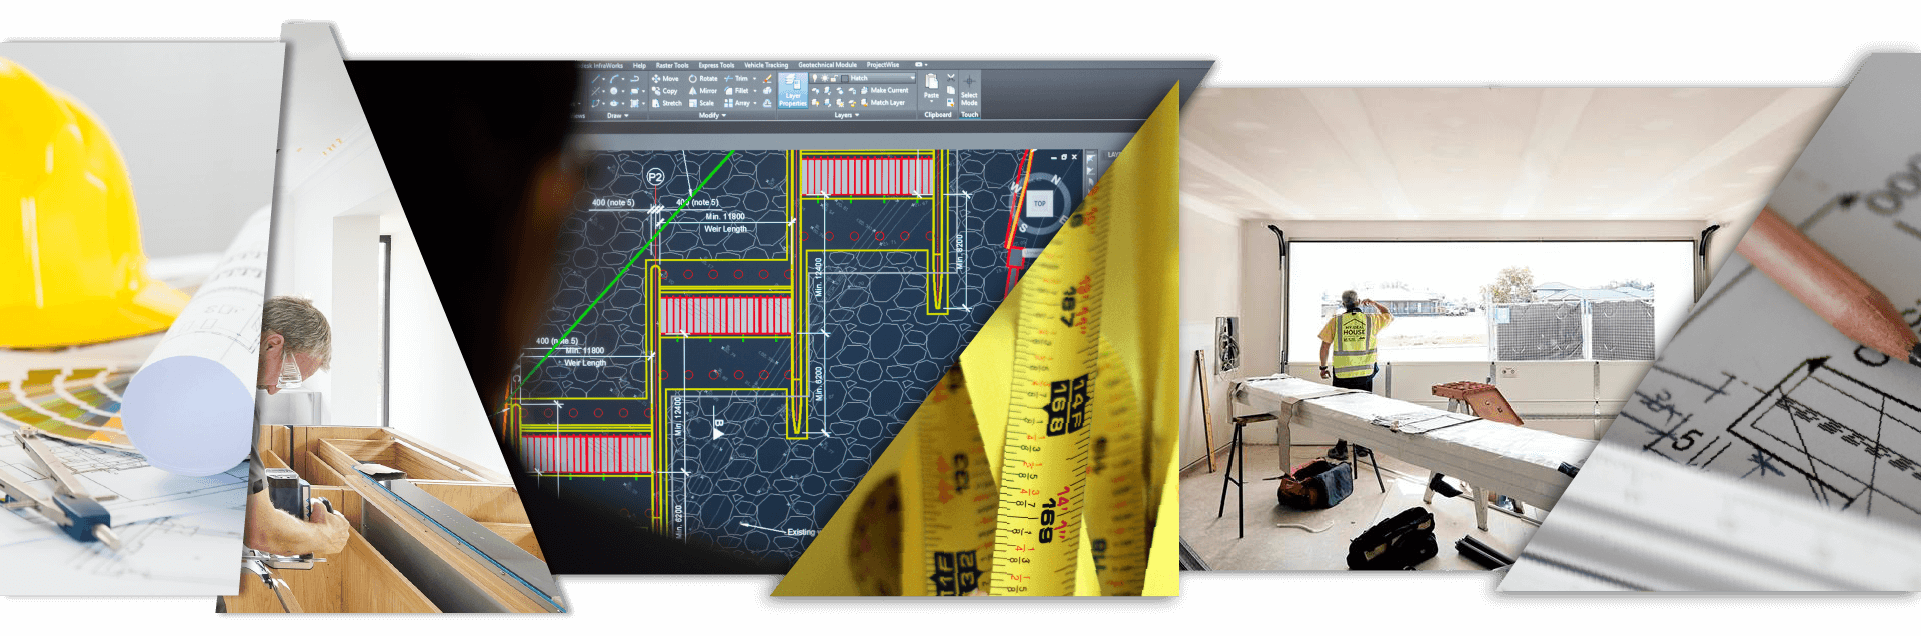 Client-side project management services in Cyprus - construction sites and technical drawings for some of Reform's projects.